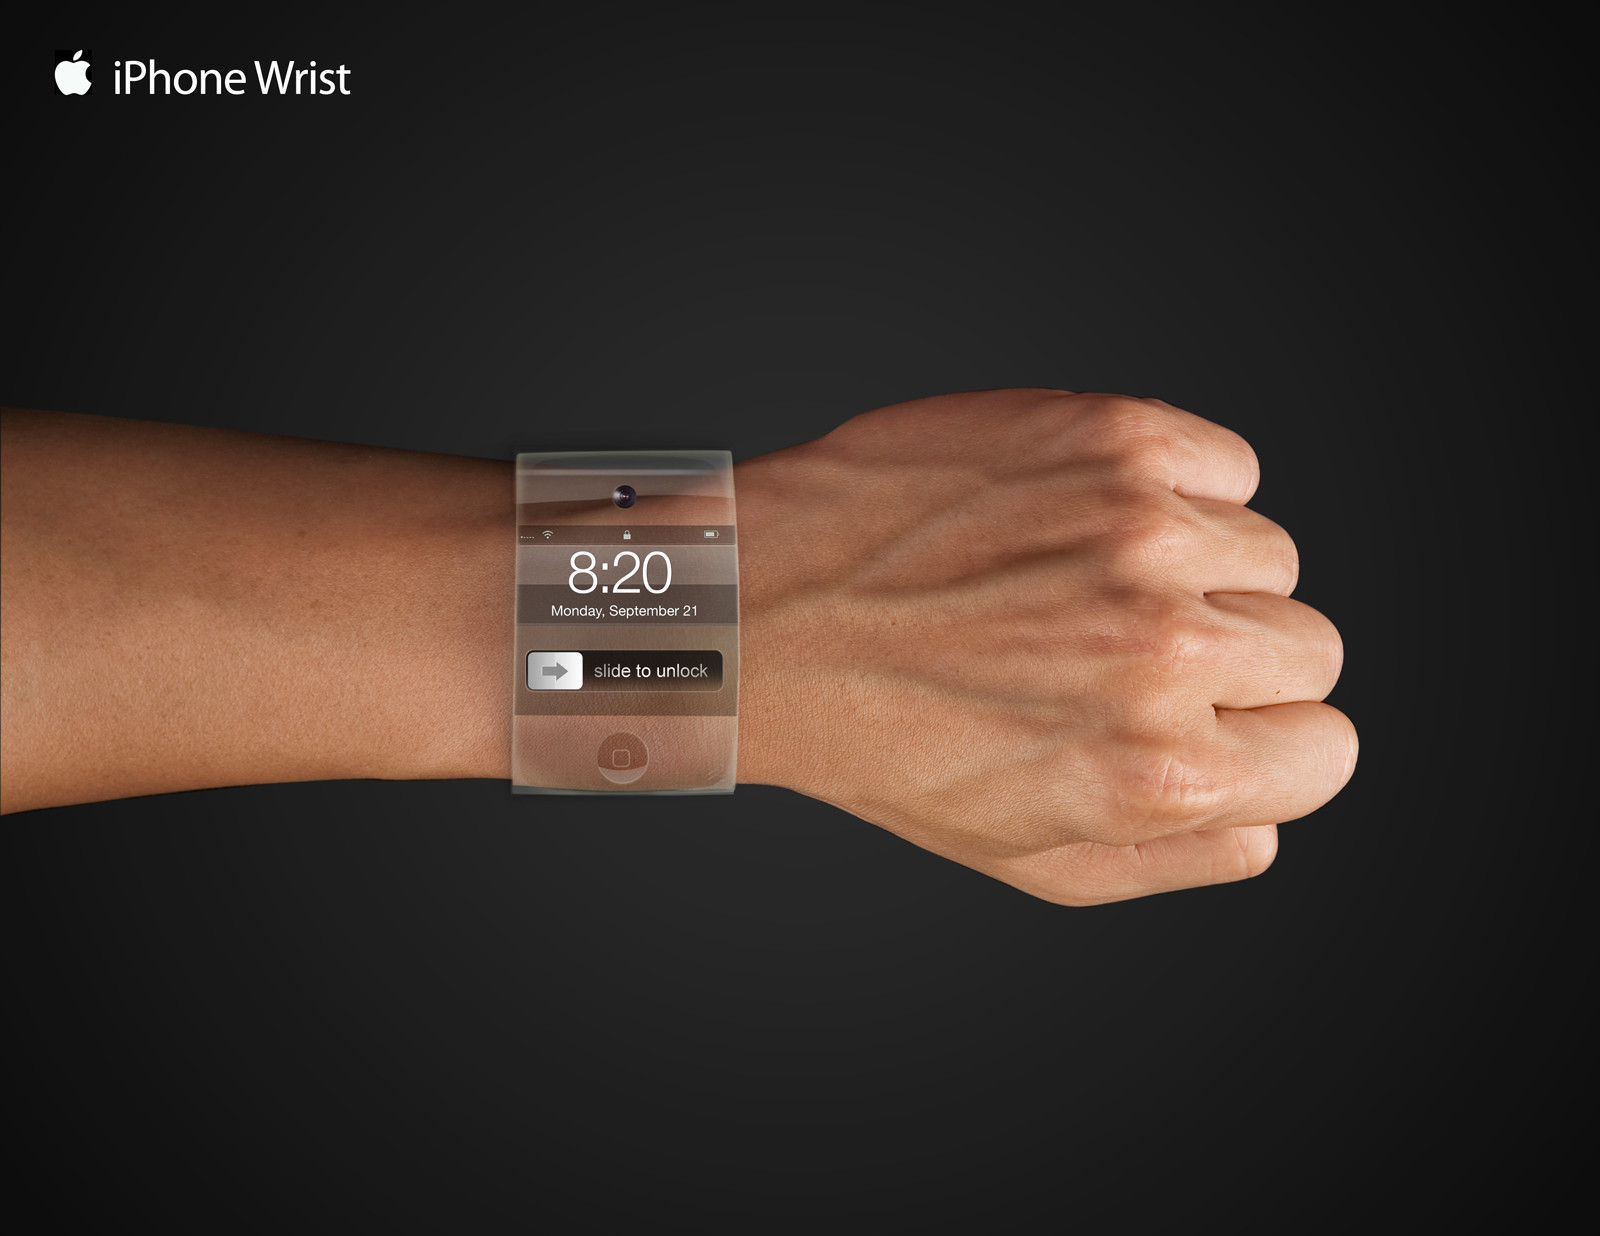 Apple Smartwatch - iWatch